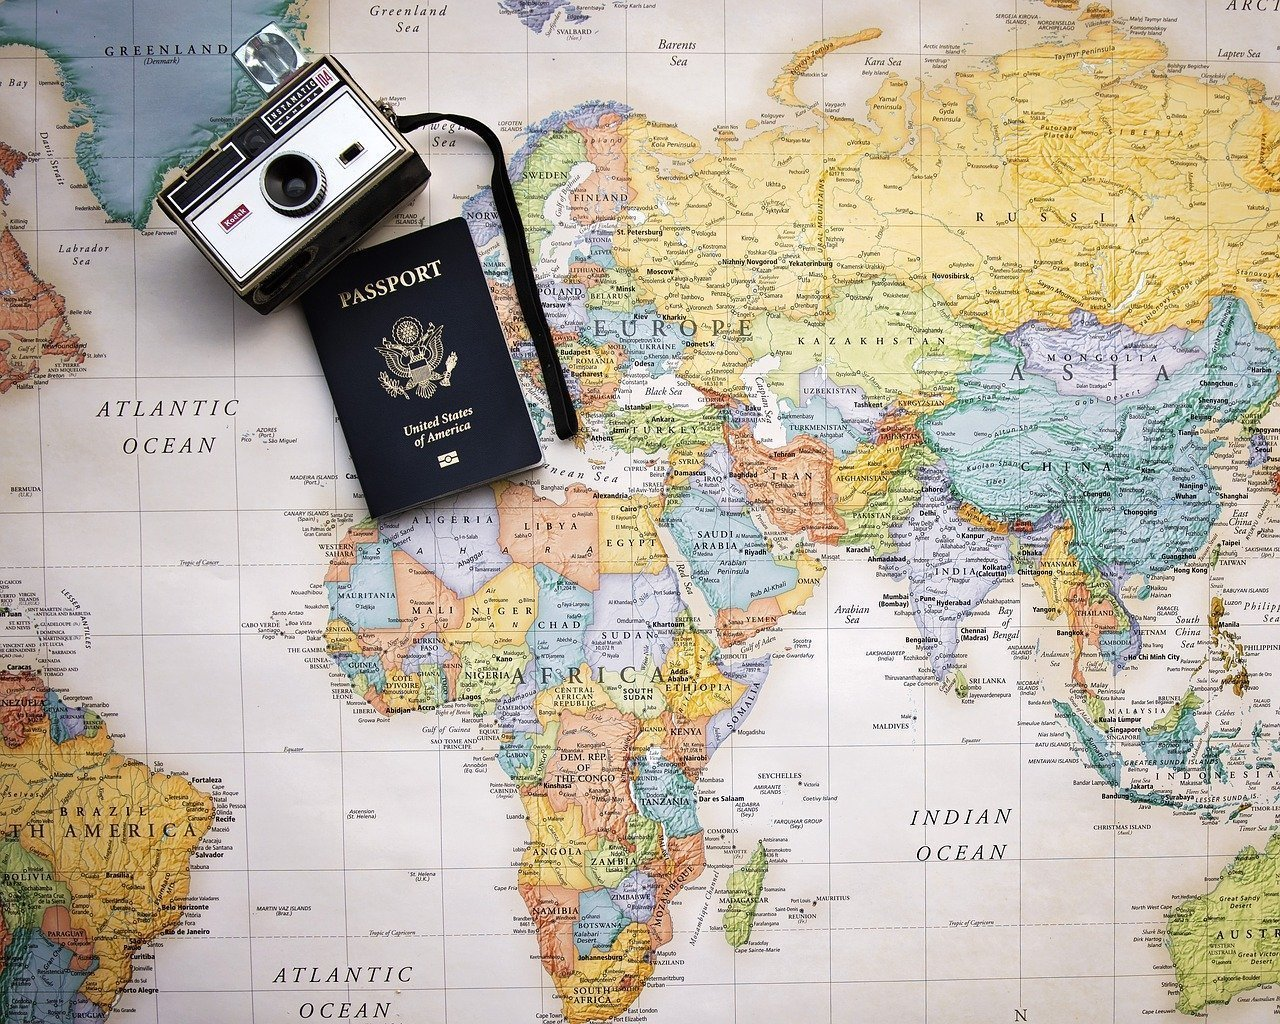 6 Critical Travel Safety Tips Every Traveler Should Know